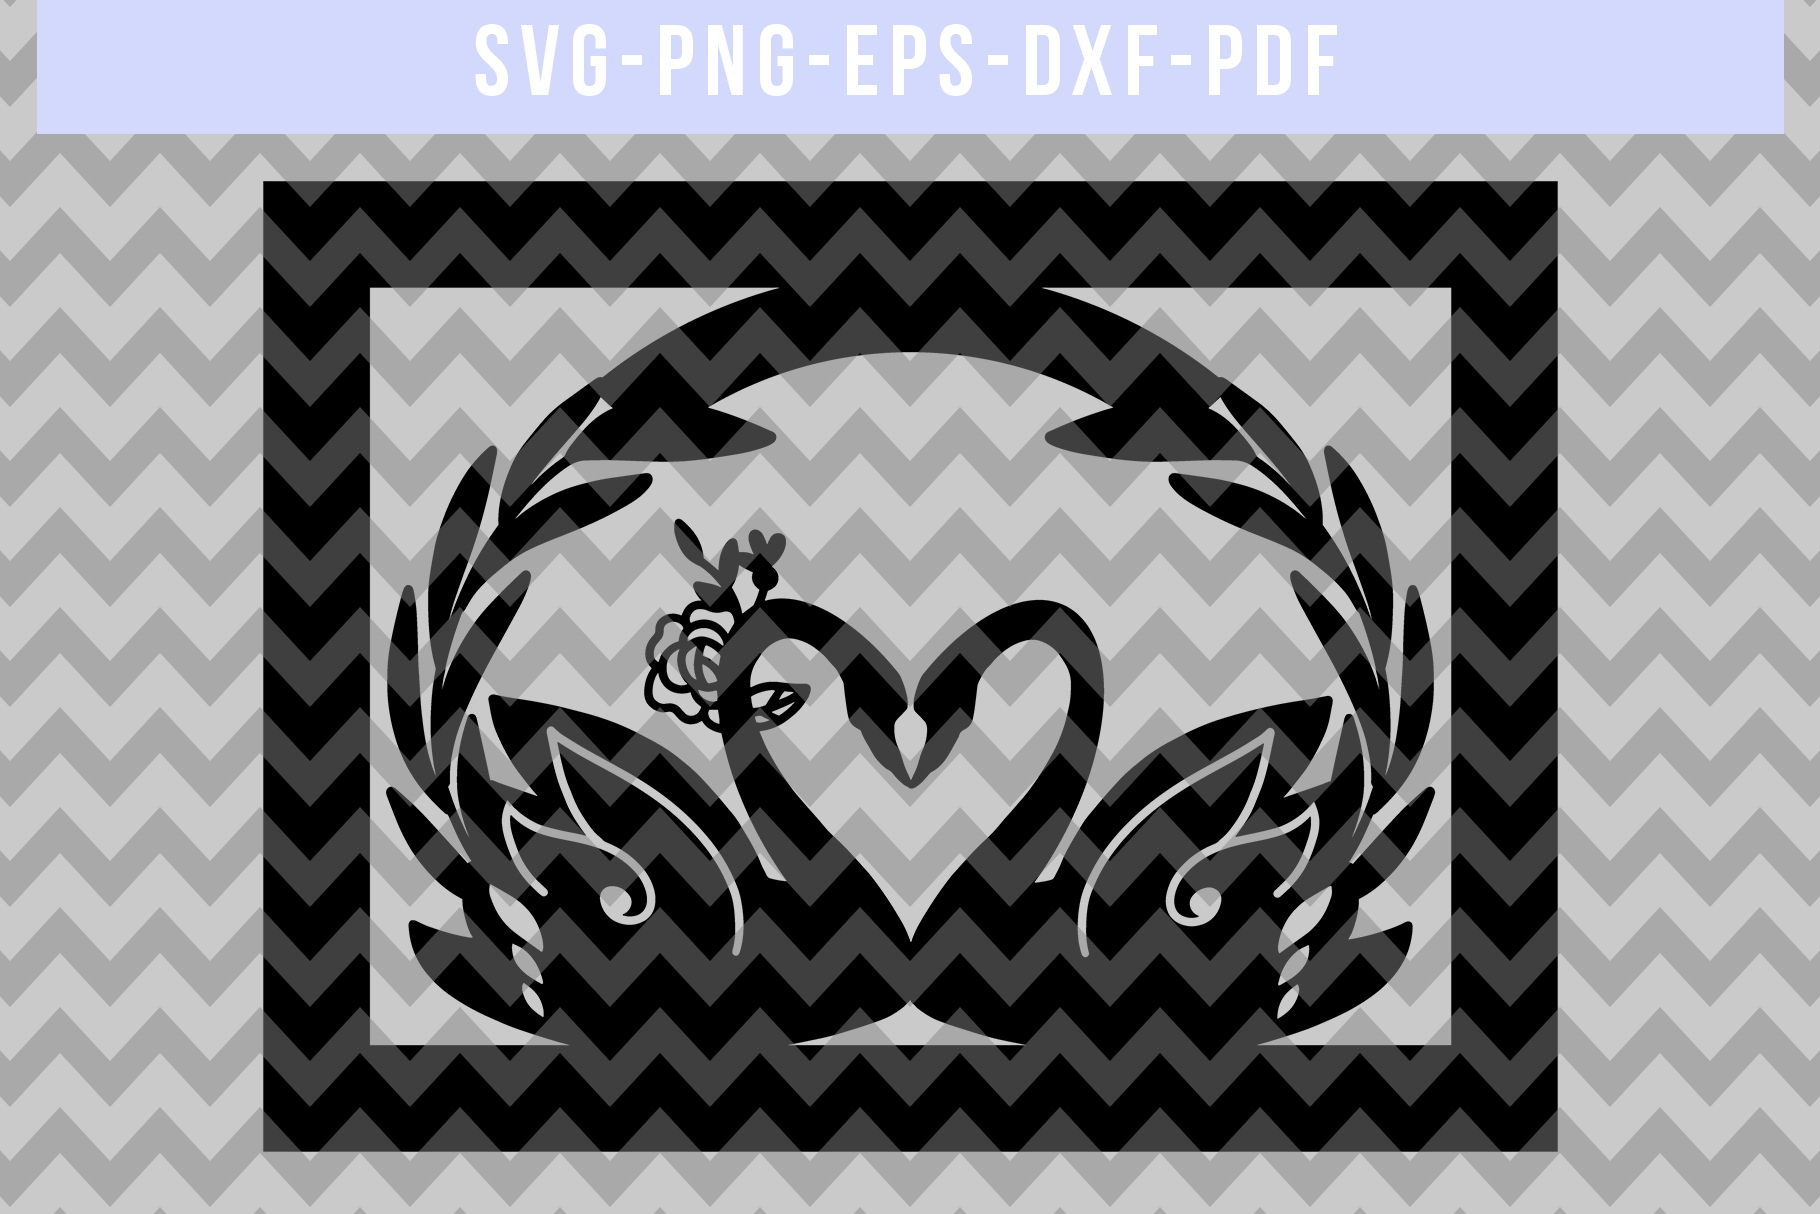 Wedding Swan Frame Papercut Template, Couple SVG, DXF, PDF example image 4